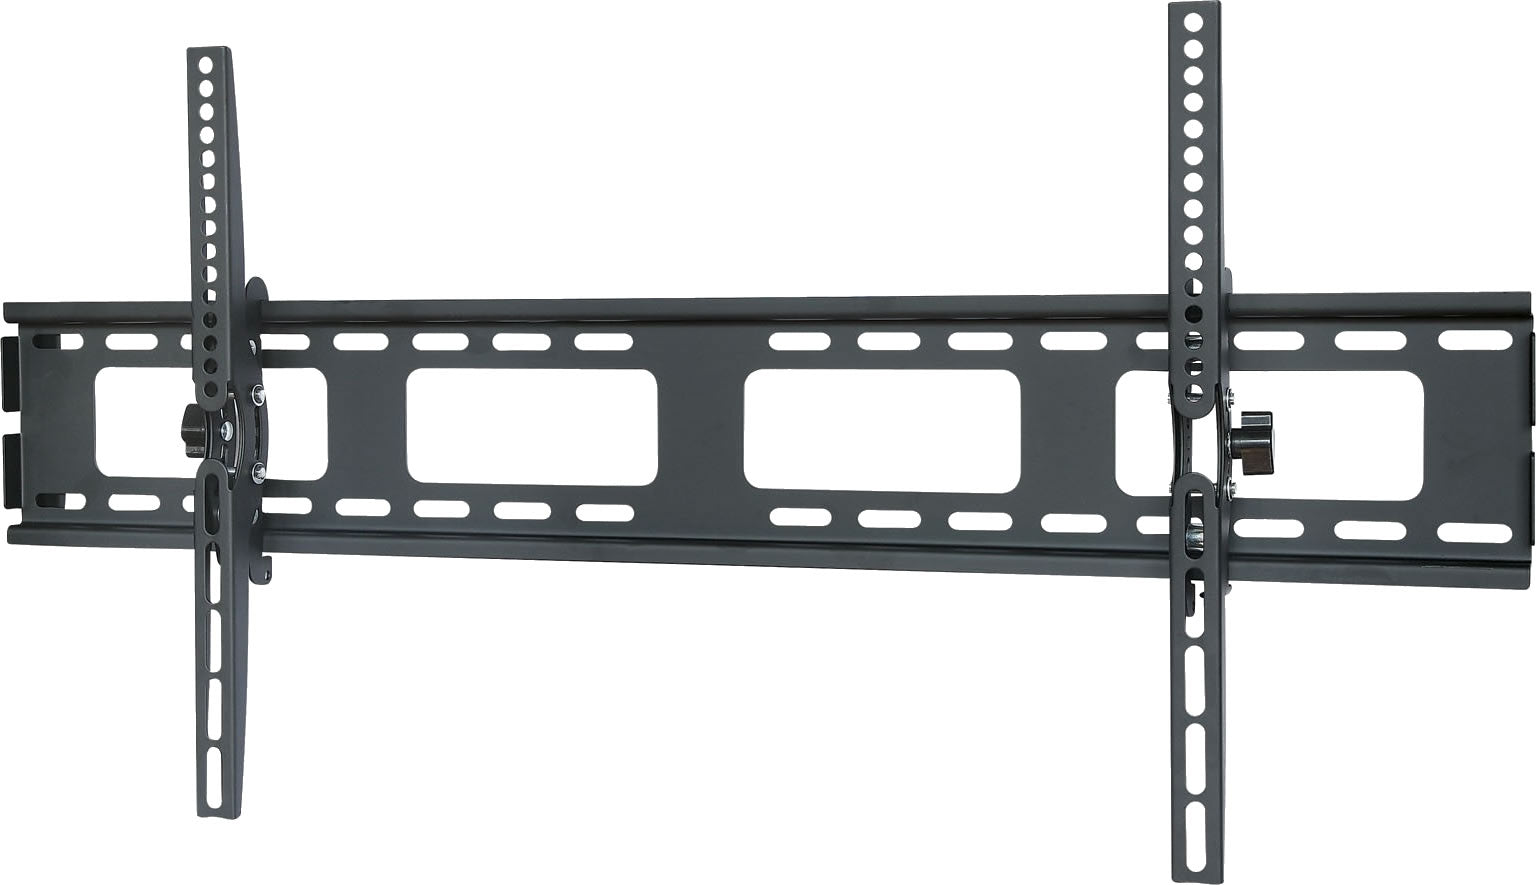 64-1131XL Tilt LCD LED TV / Monitor Wall Mount Bracket for 42-70 inches TVs